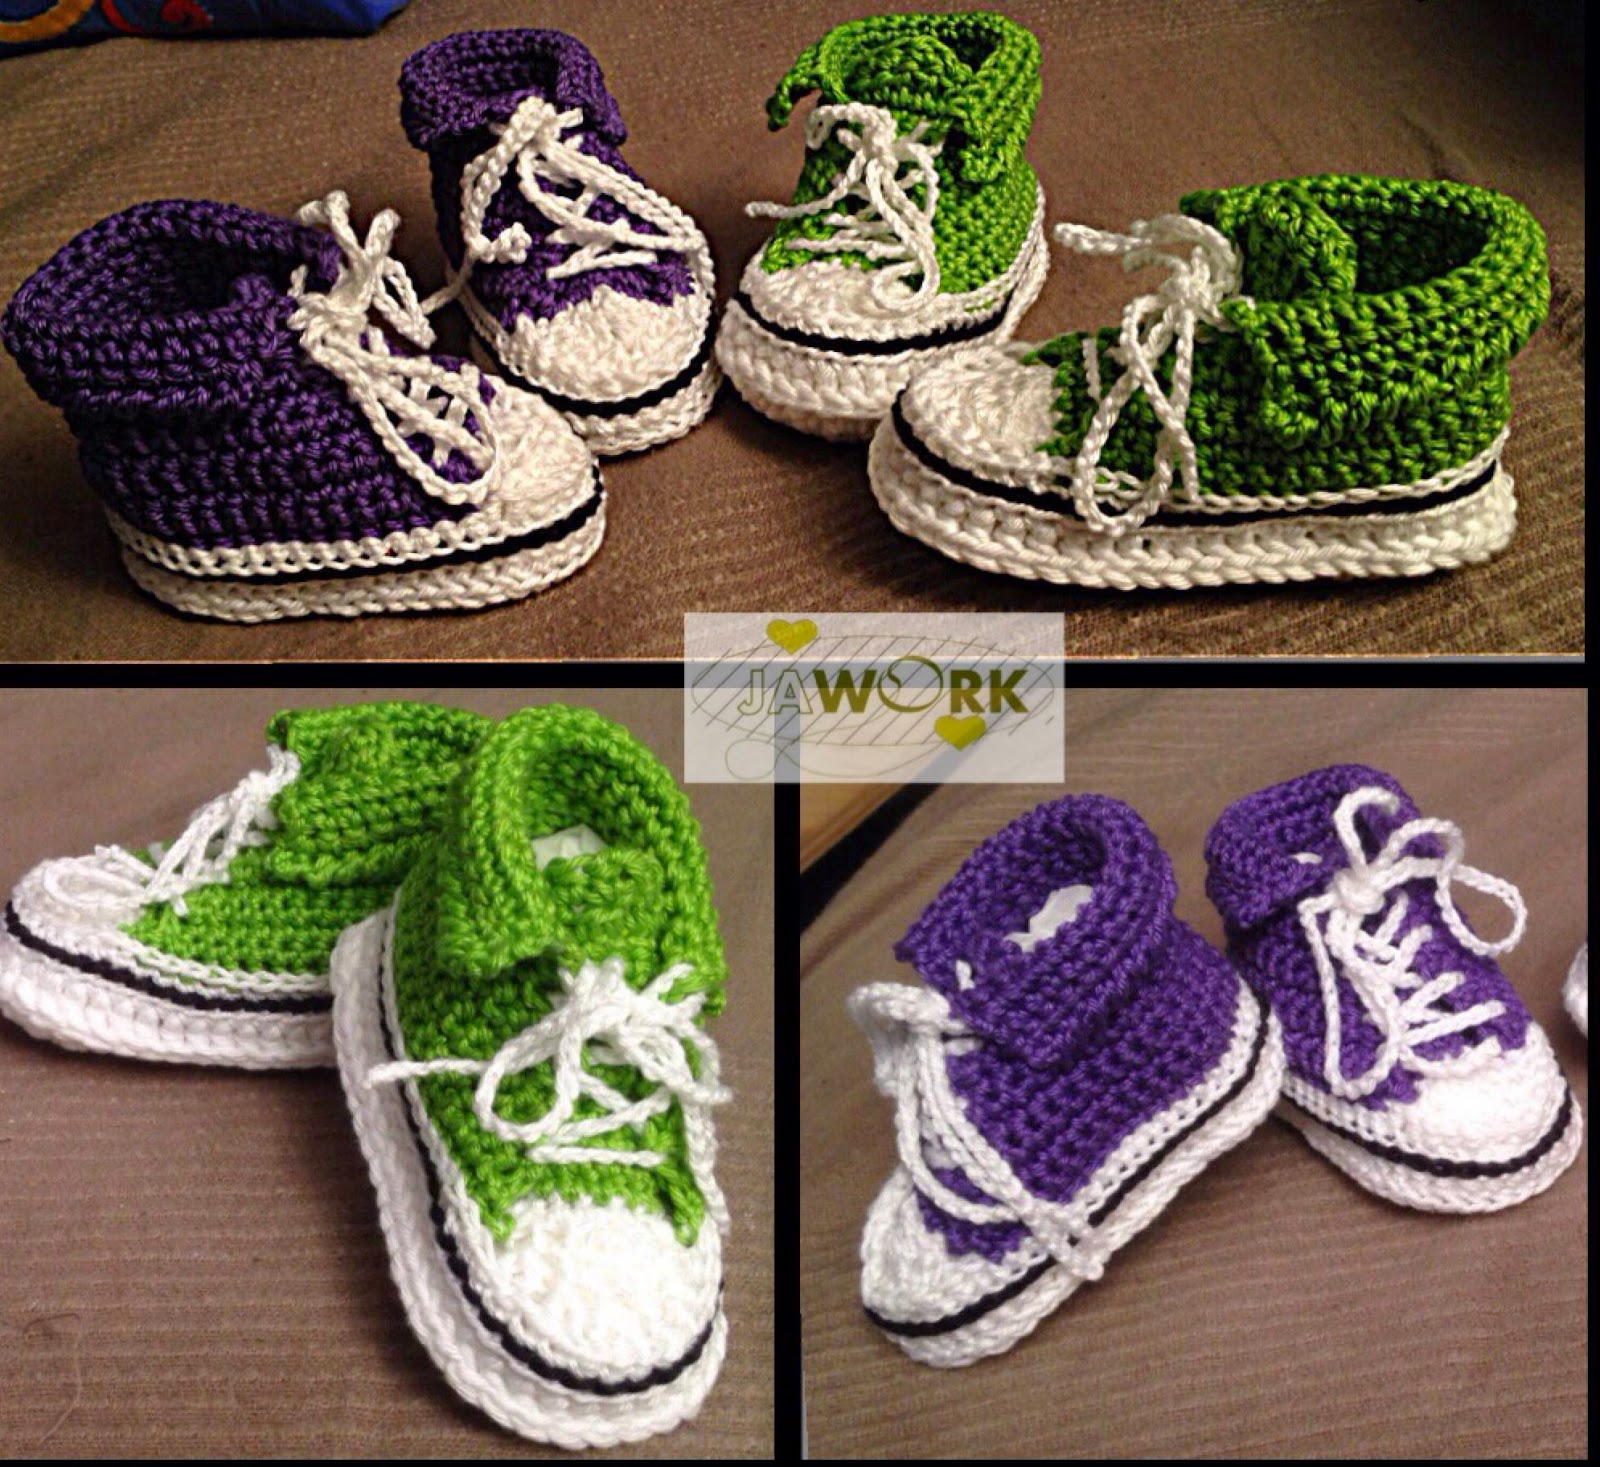 Jawork Handmade With Love Baby Chucks Häkeln